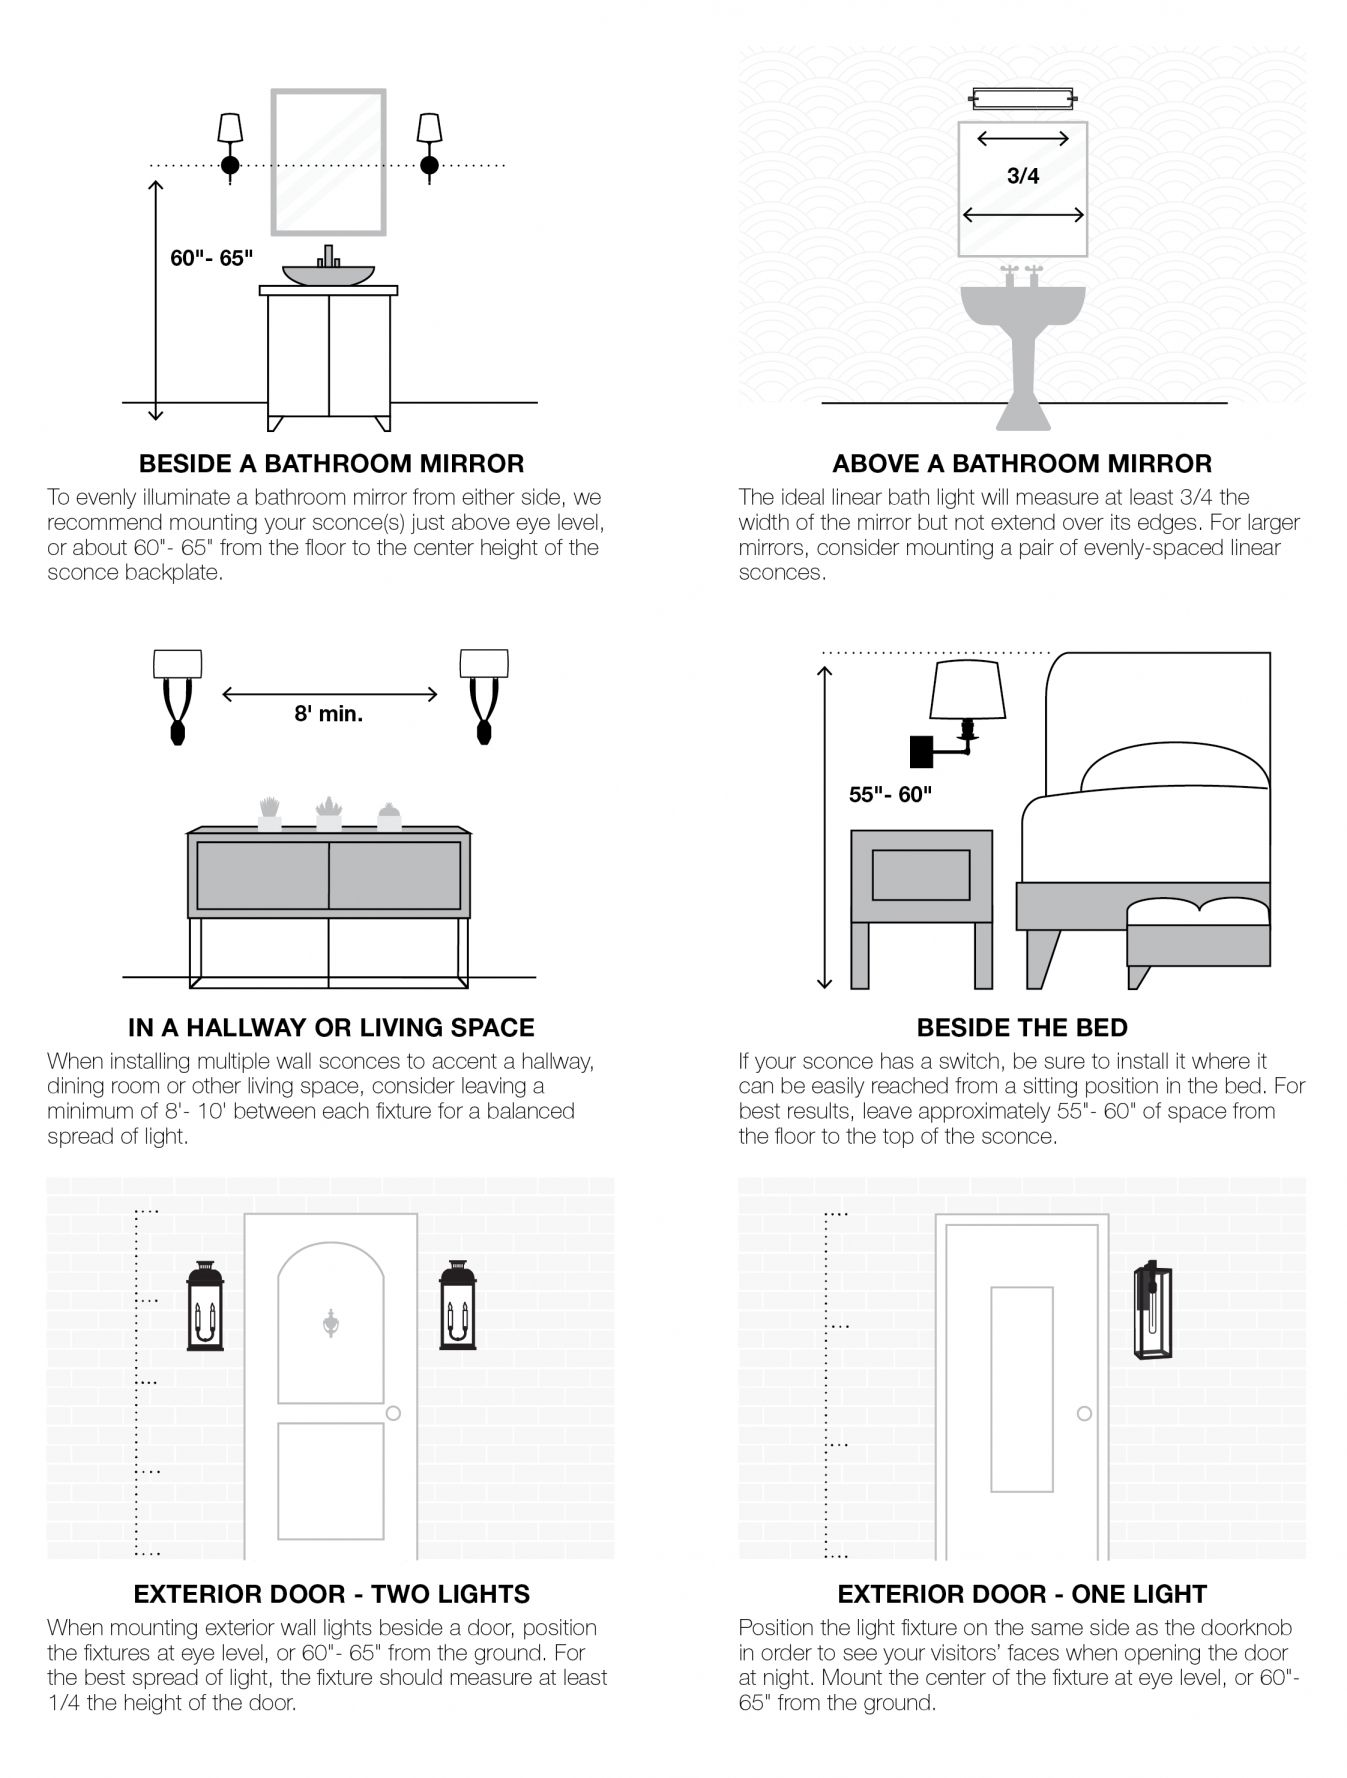 10 Awesome Bathroom Cabinet Height Extension For Vanity Lighting Fixtures Gallery Interior Design Guide Bathroom Sconces Interior Design Tips